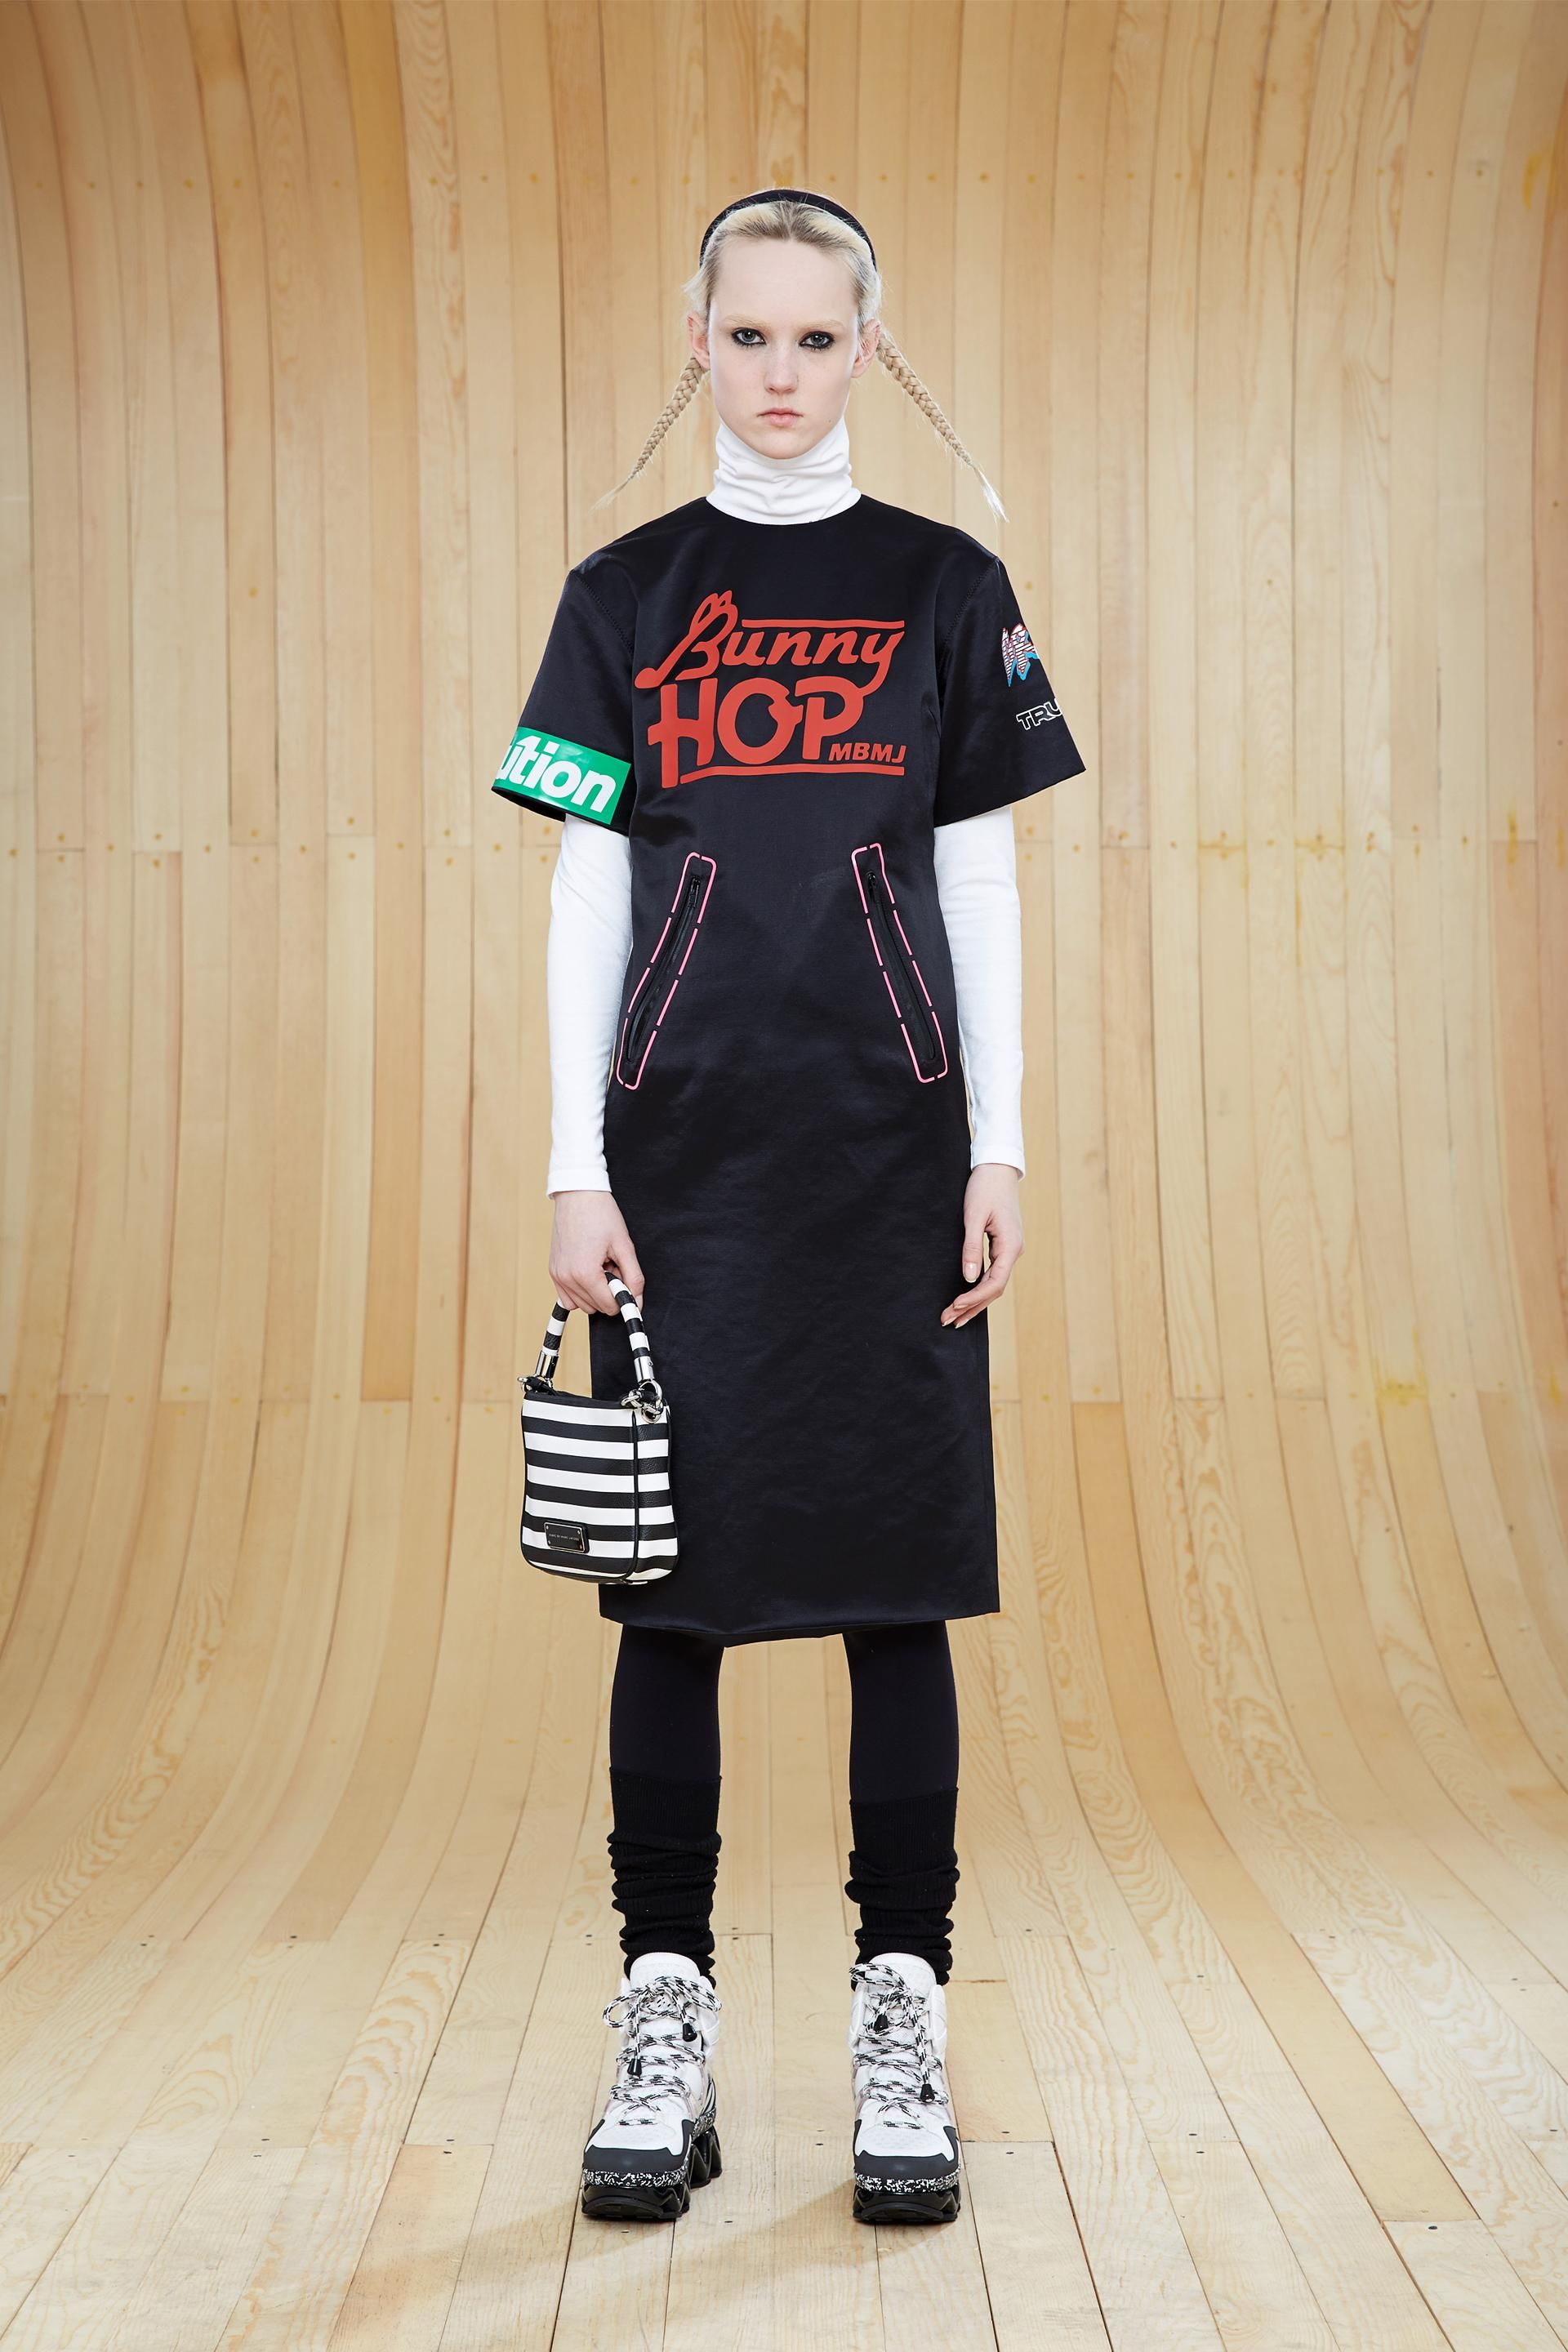 Marc by marc jacobs transfer satin bmx tshirt dress in black cps